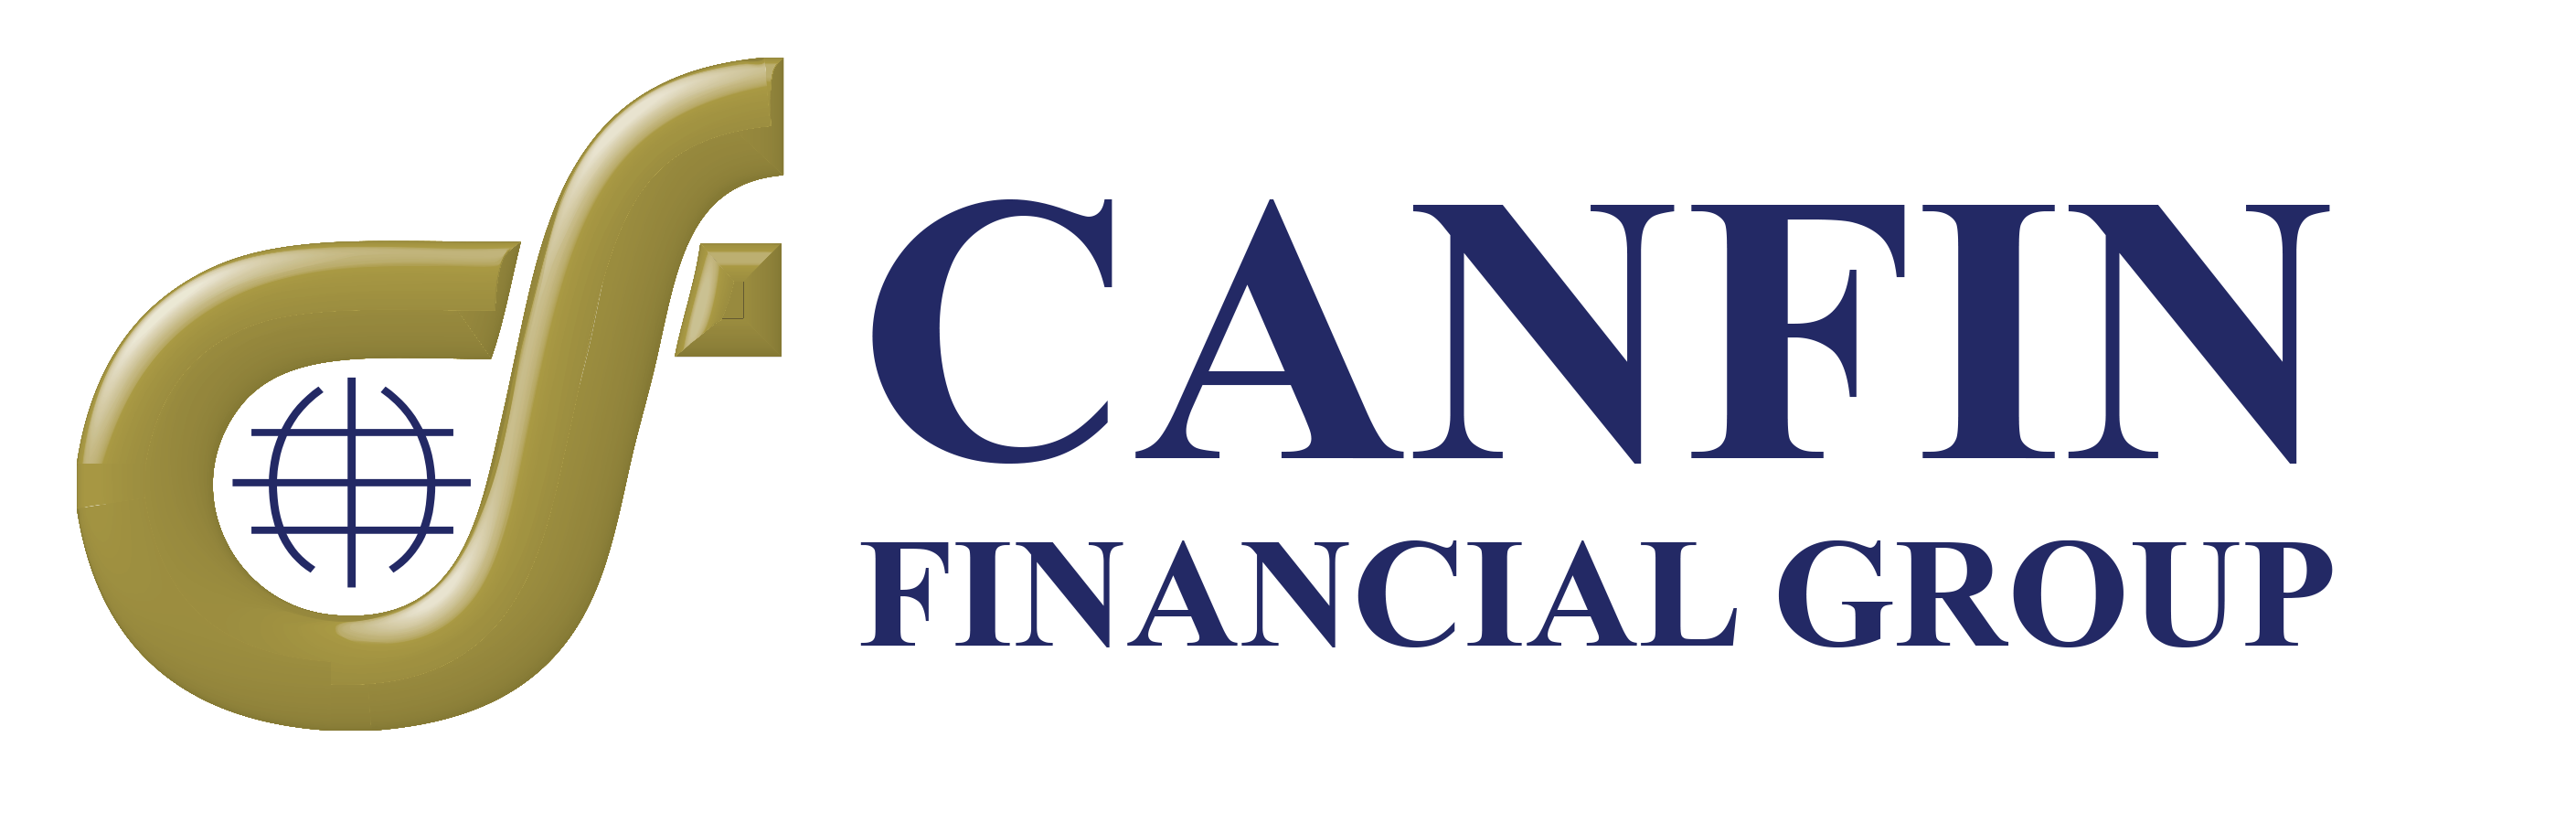 Grant Matossian - CANFIN Financial Group - Logo